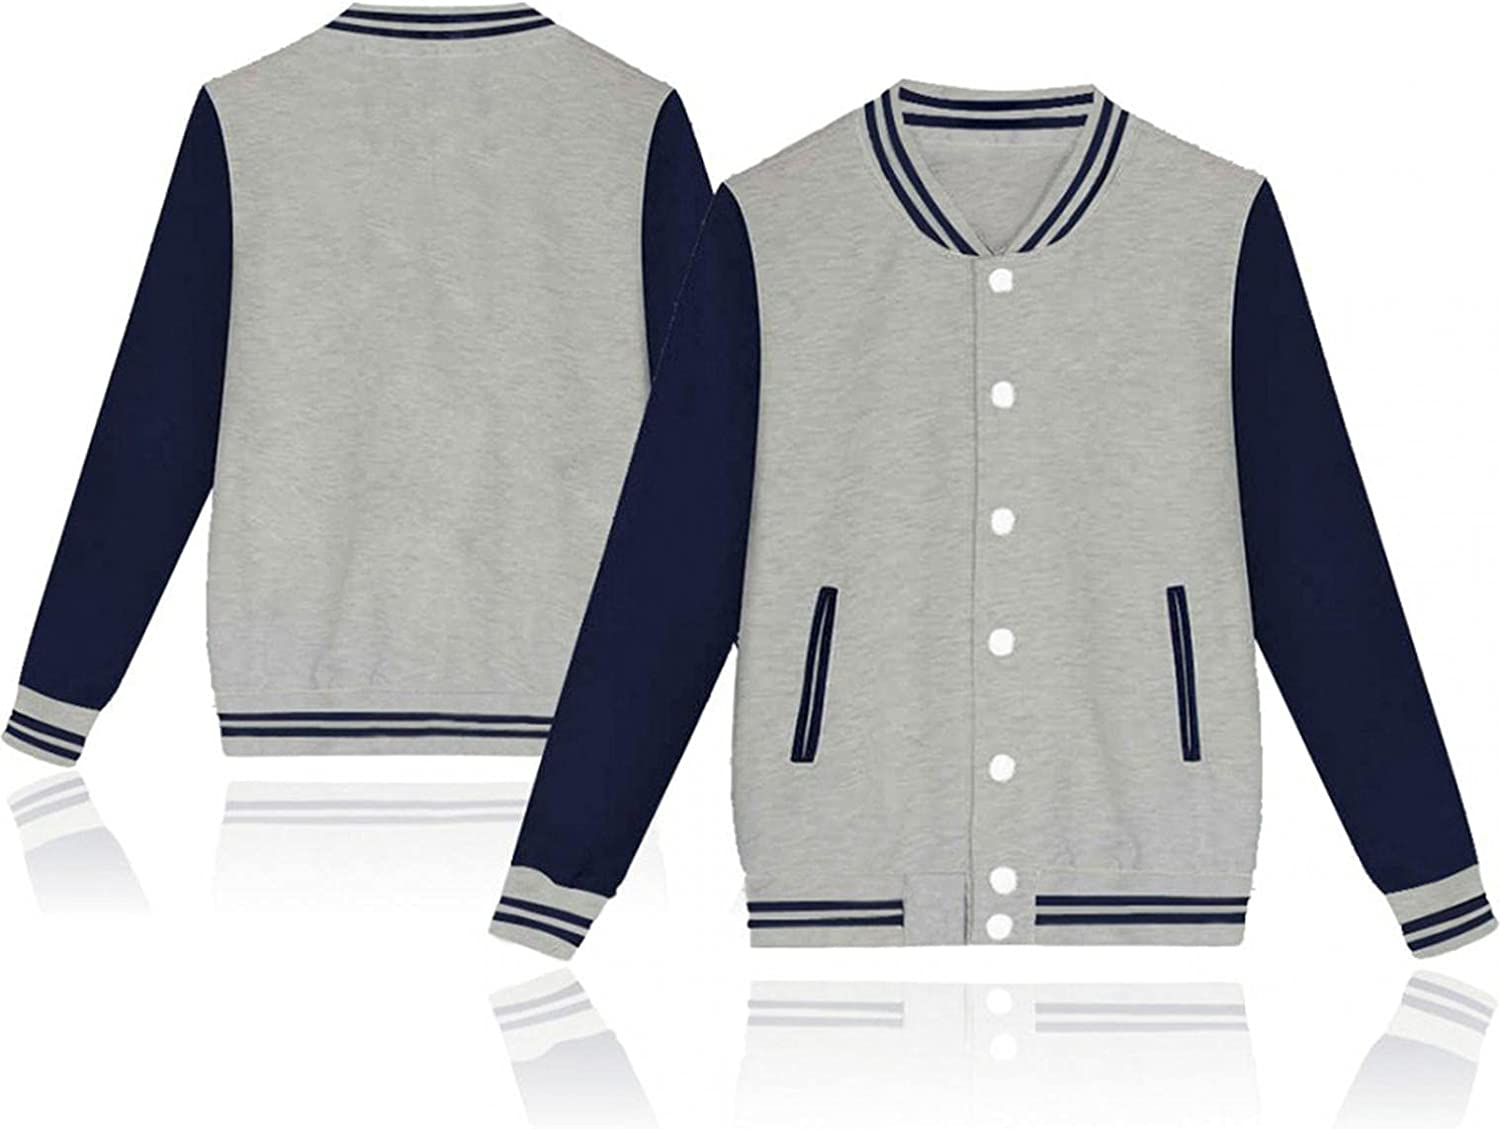 Men's Varsity Baseball Jackets Casual Patchwork Button Down Bomber Coats Soft Cotton Premium Outwear Tops for Unisex